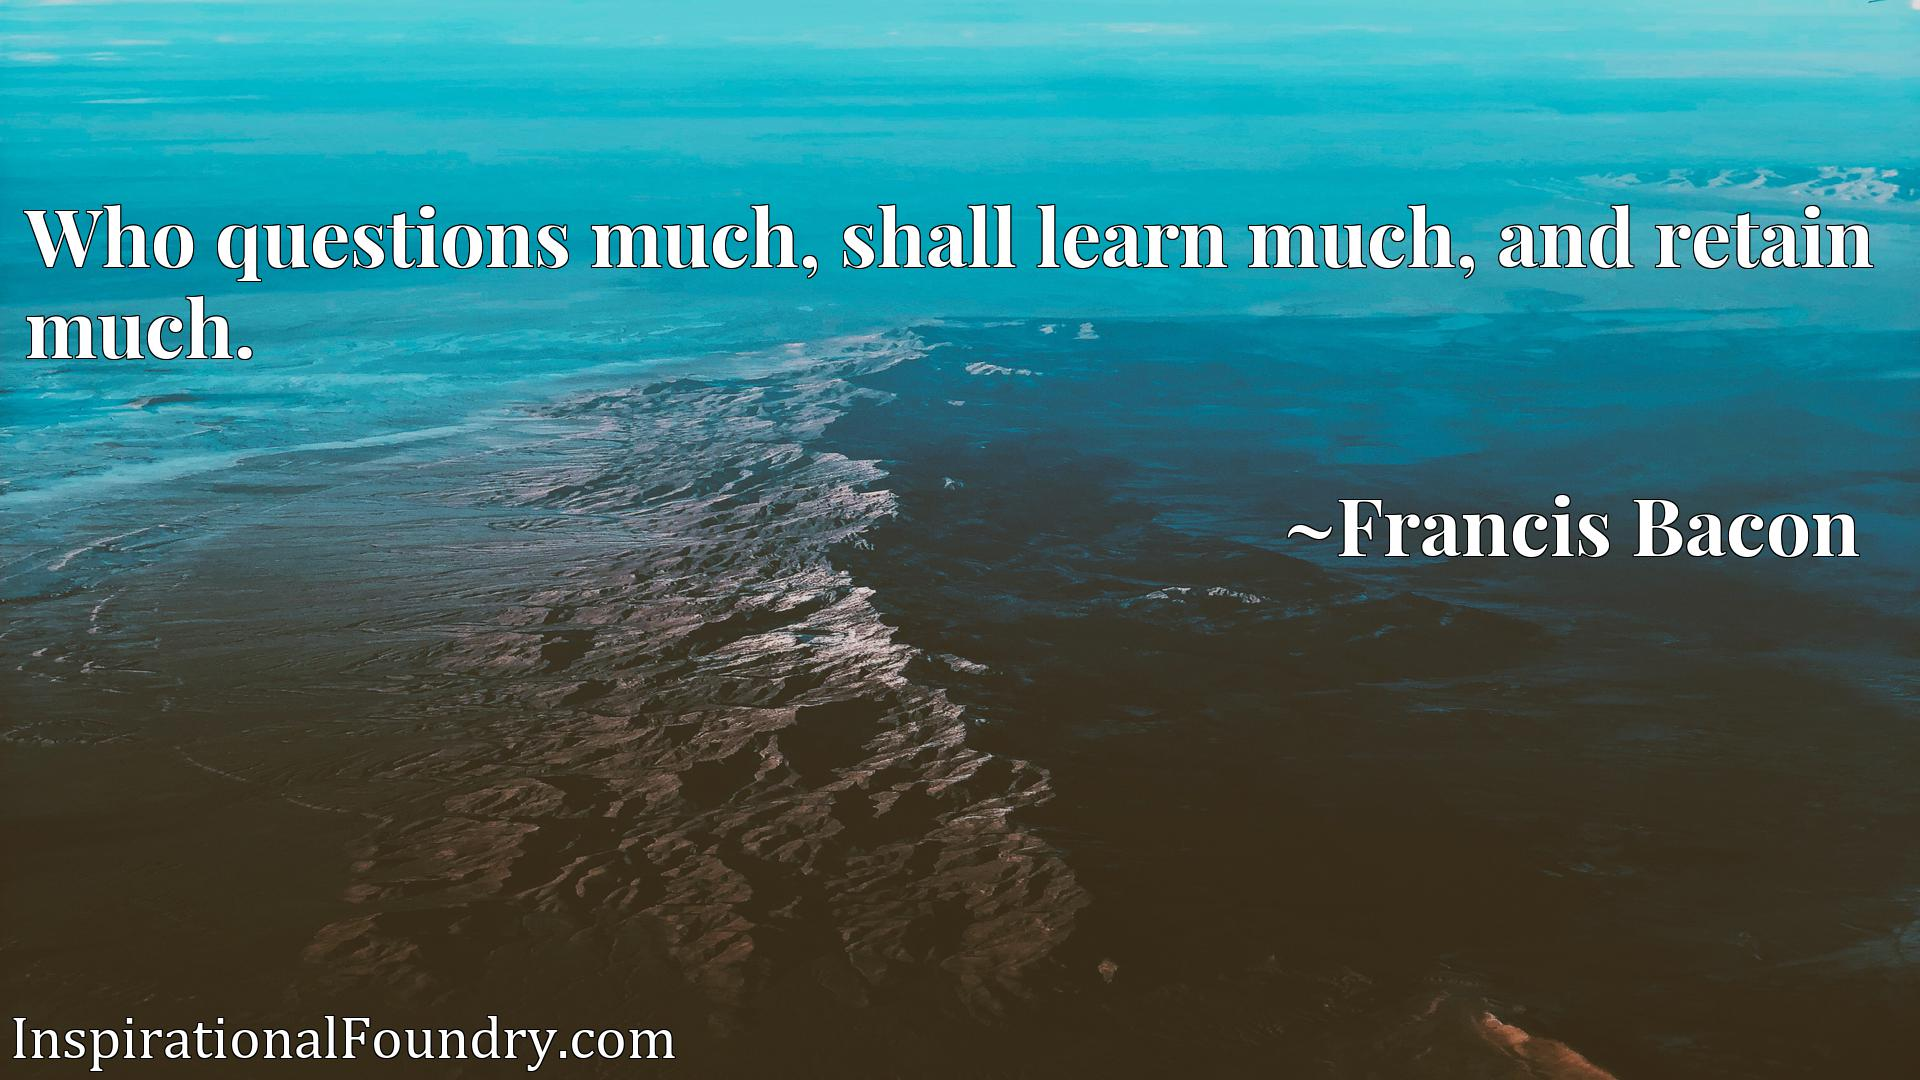 Who questions much, shall learn much, and retain much.